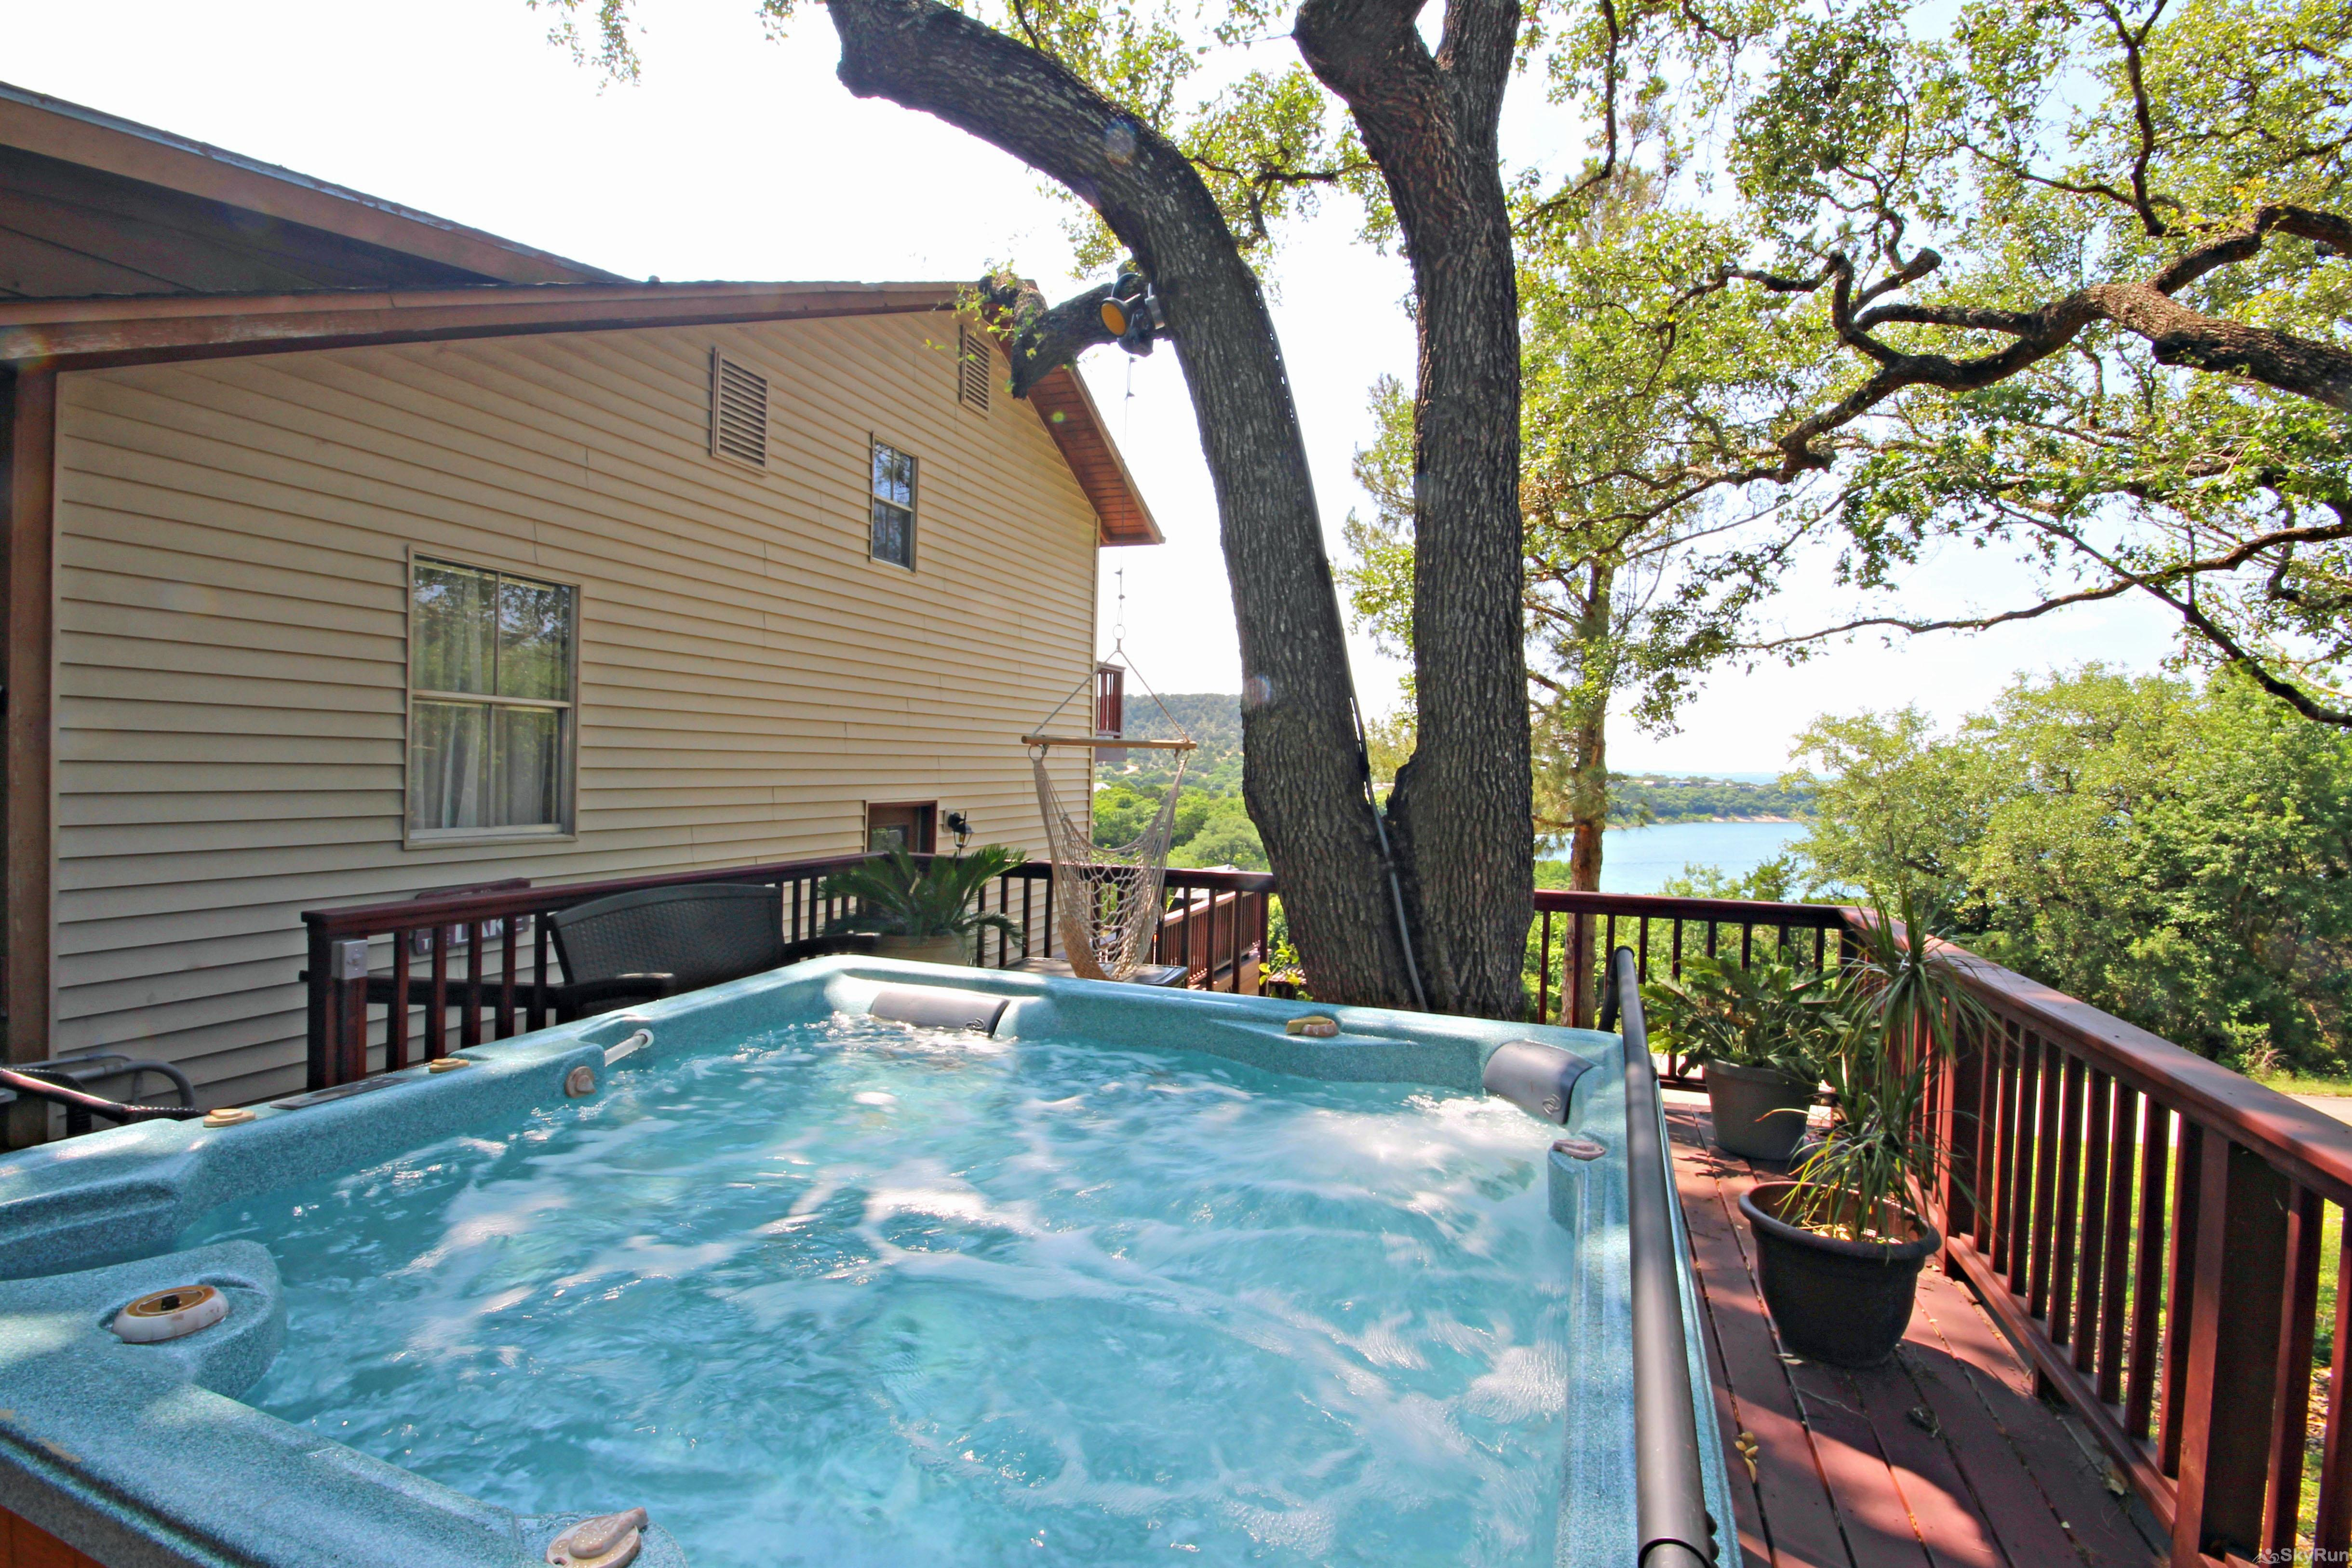 RIVENDELL LODGE Come and enjoy the hot tub and Canyon Lake views